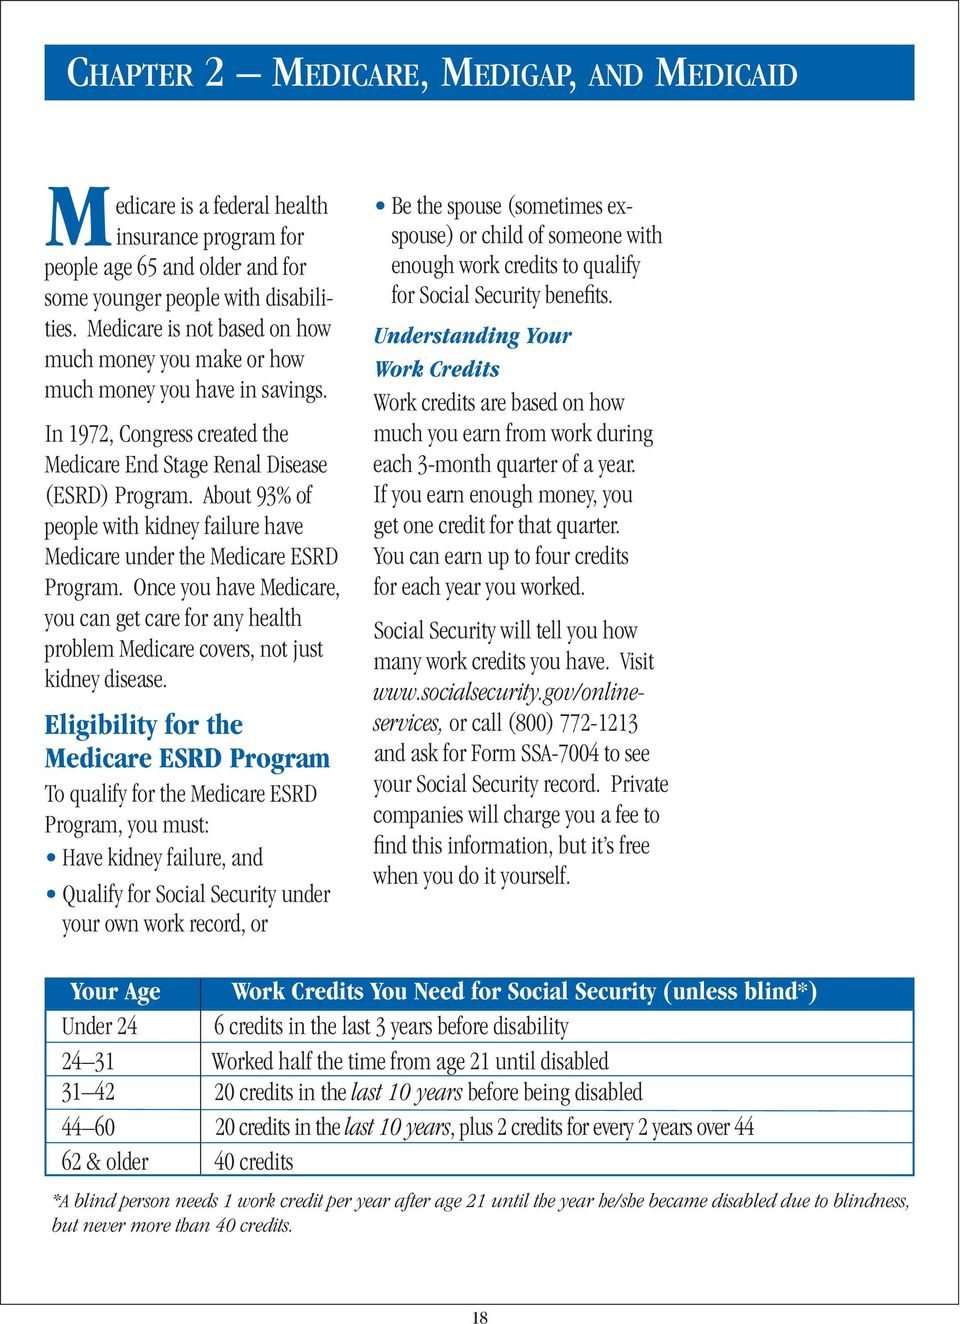 About 93% of people with kidney failure have Medicare under the Medicare ESRD Program. Once you have Medicare, you can get care for any health problem Medicare covers, not just kidney disease.